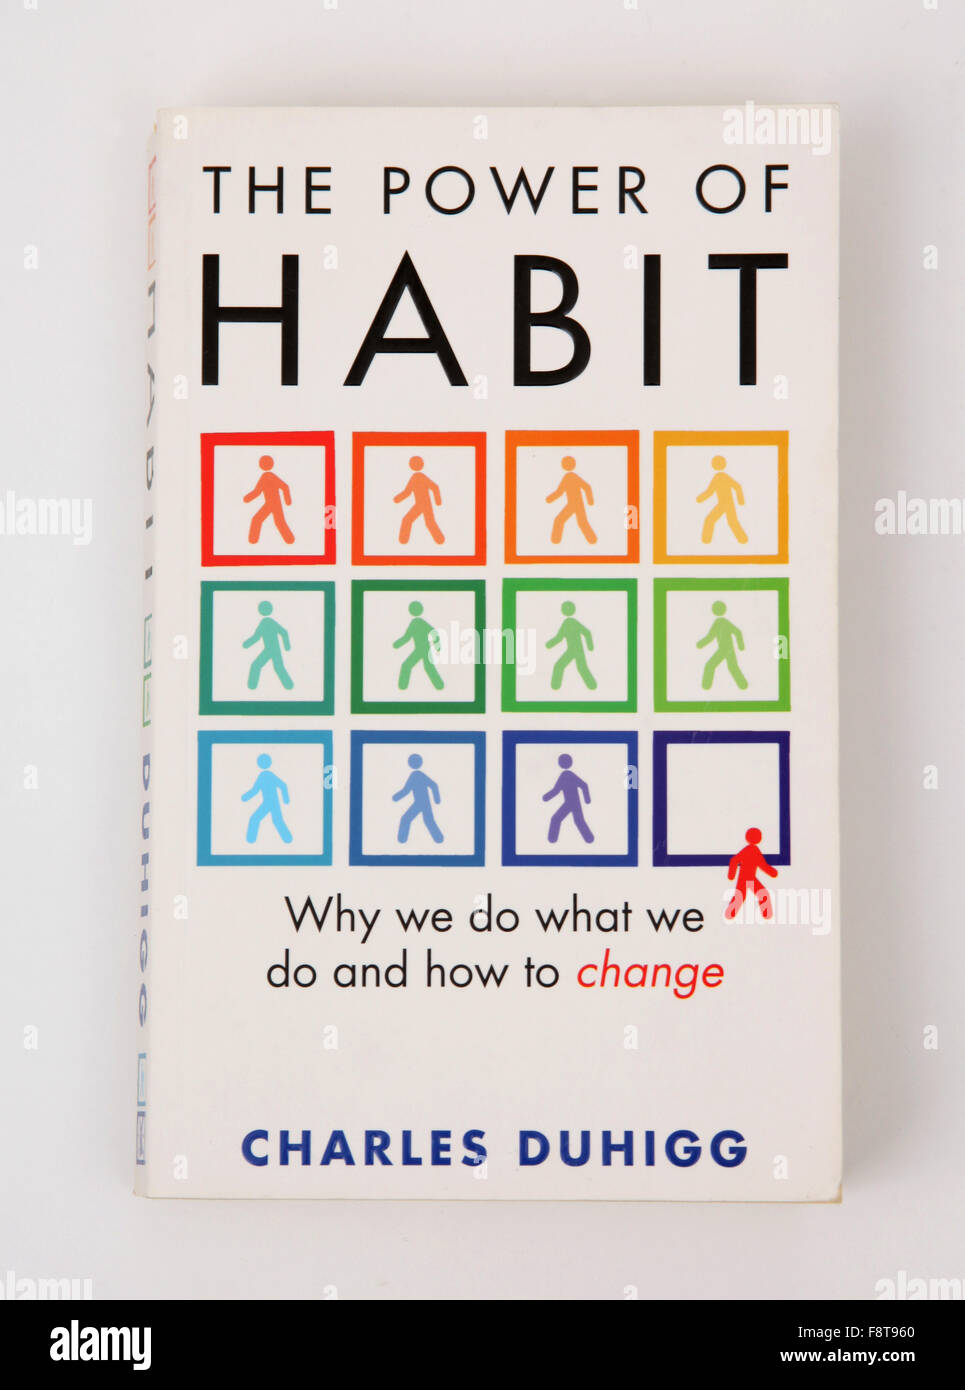 The book - The Power of Habit by Charles Duhigg - Stock Image